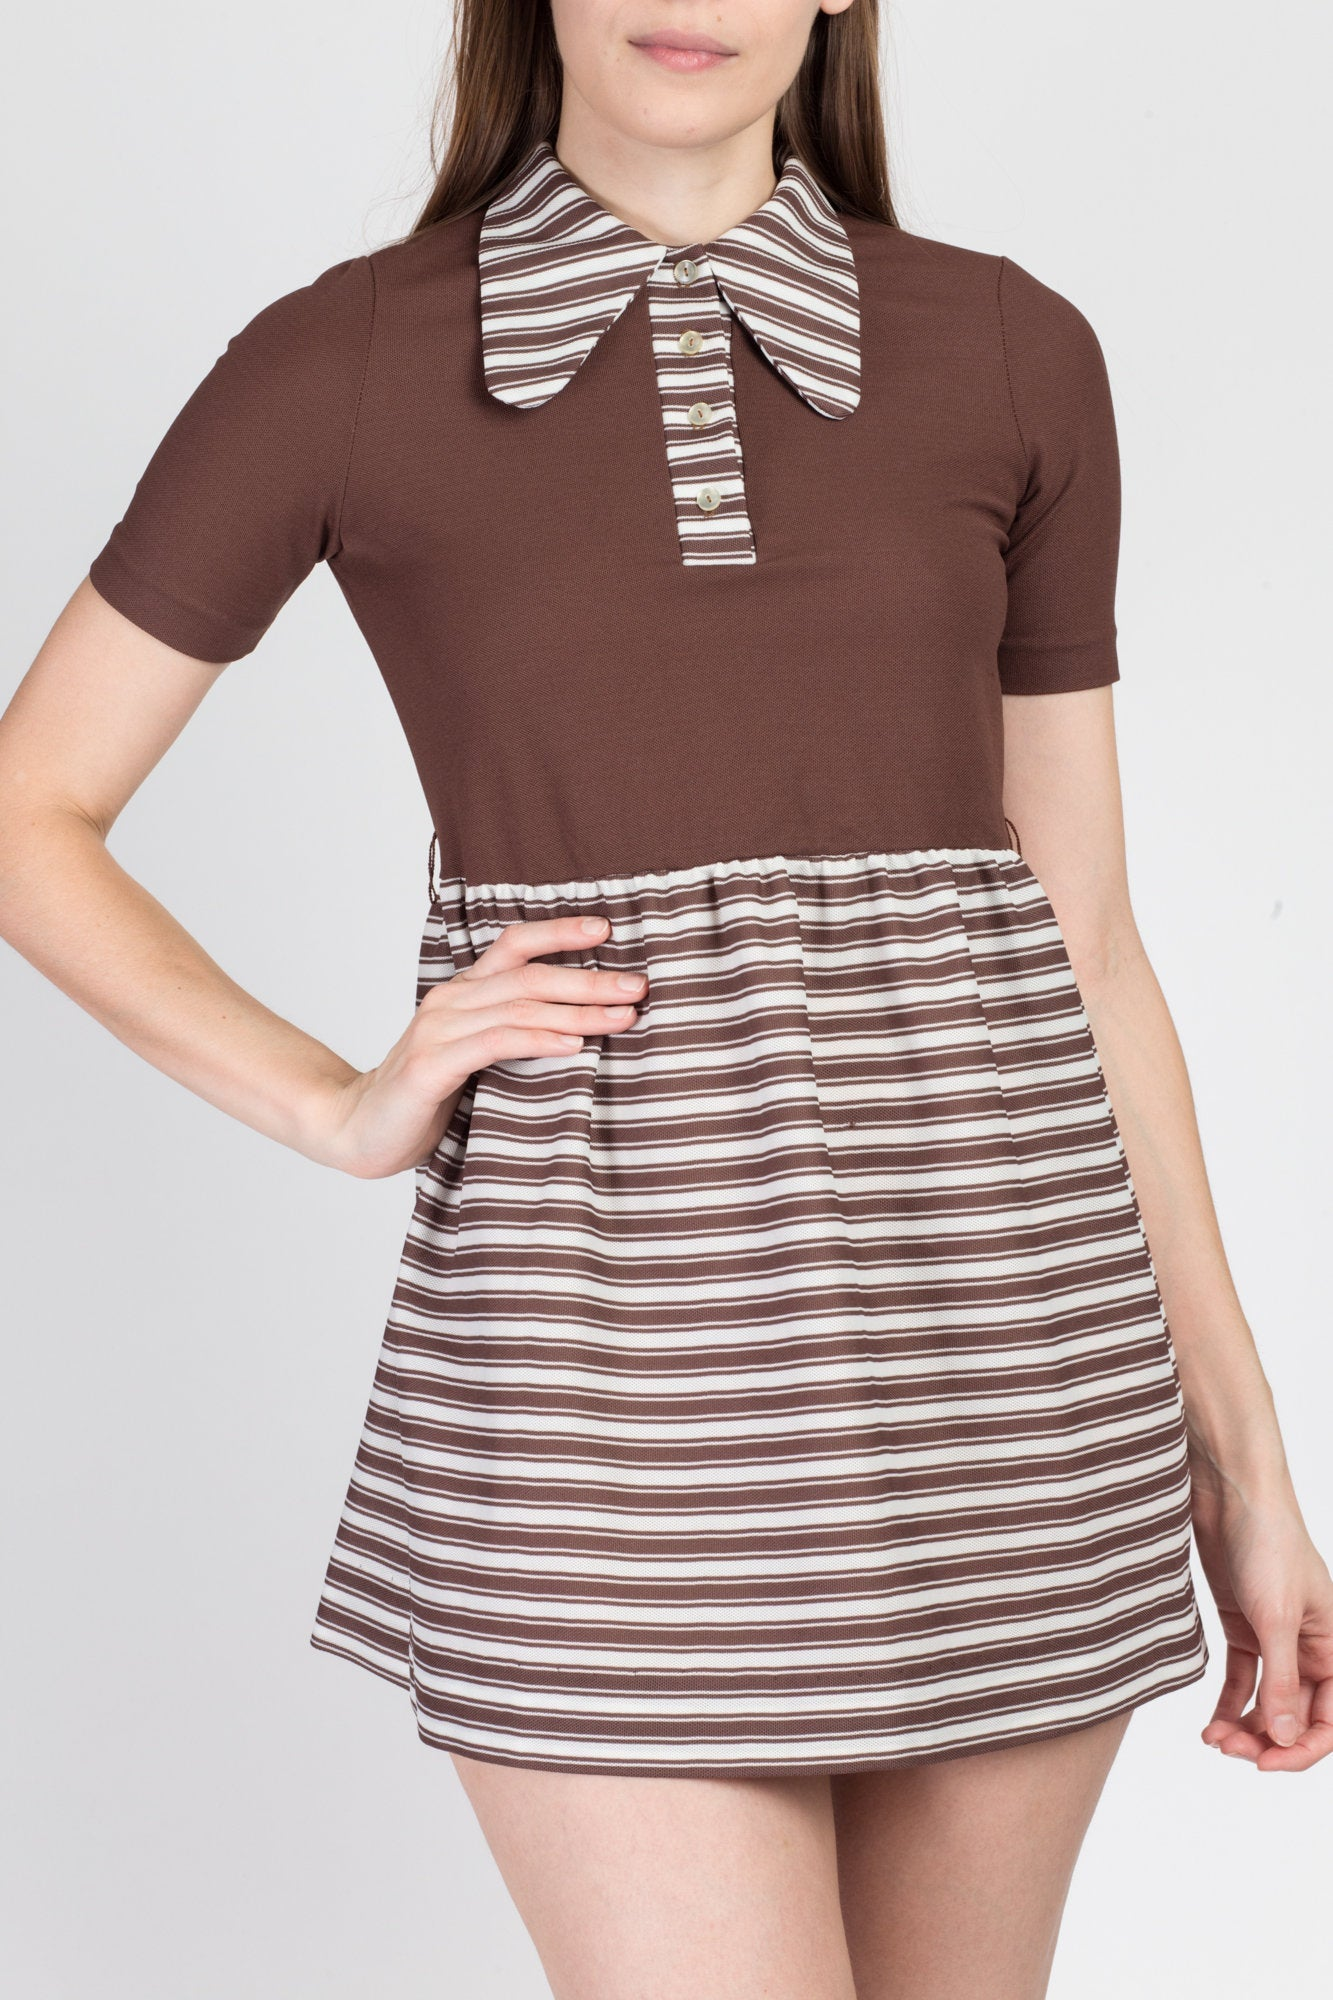 70s Striped Mod Mini Babydoll Dress - XXS